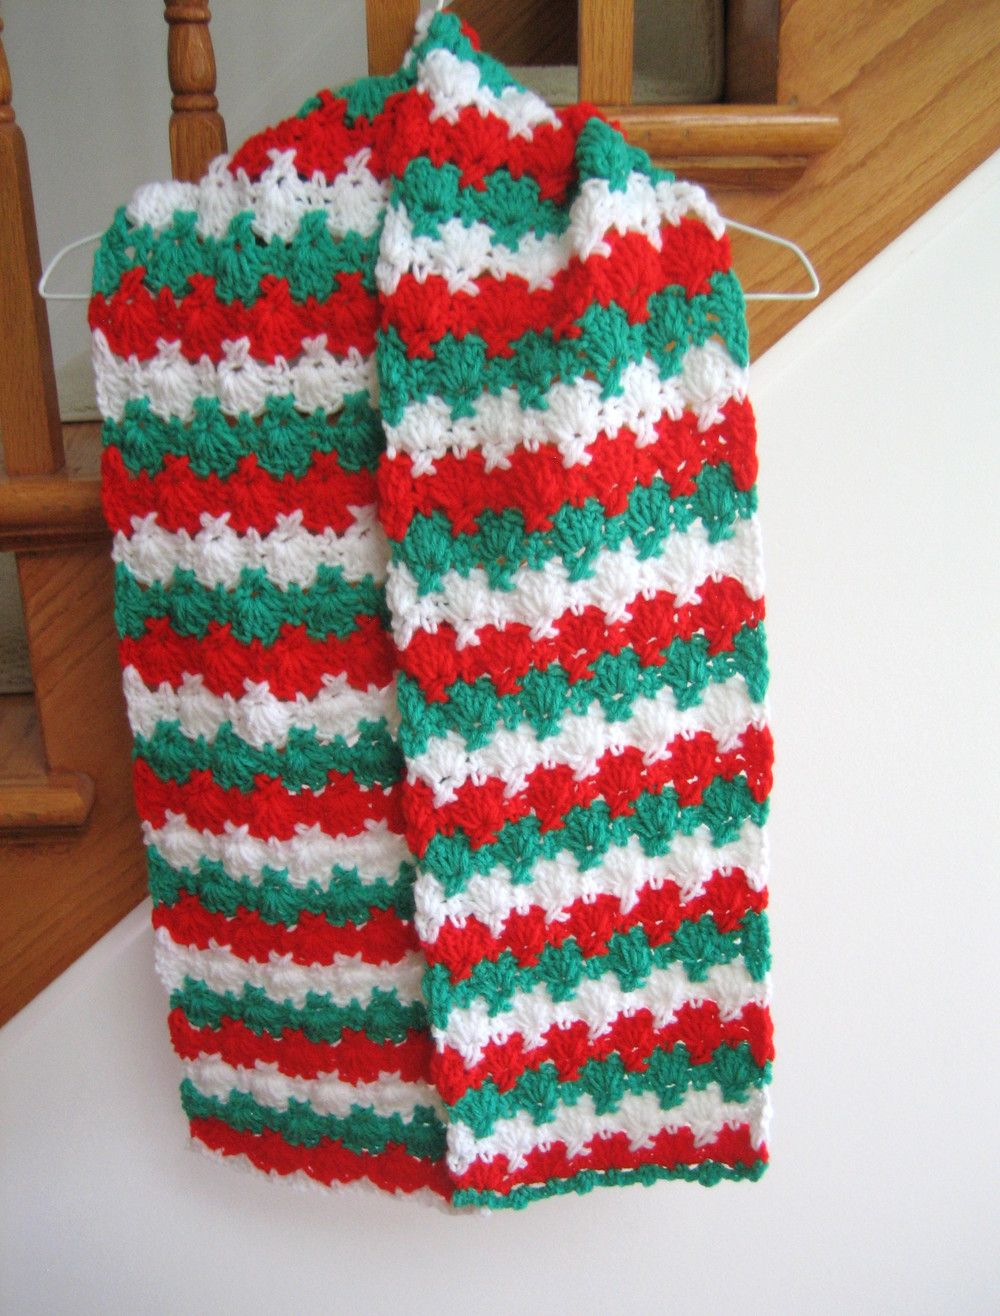 Holiday Criss Cross Crocheted Scarf Pattern | Crochet scarf patterns ...